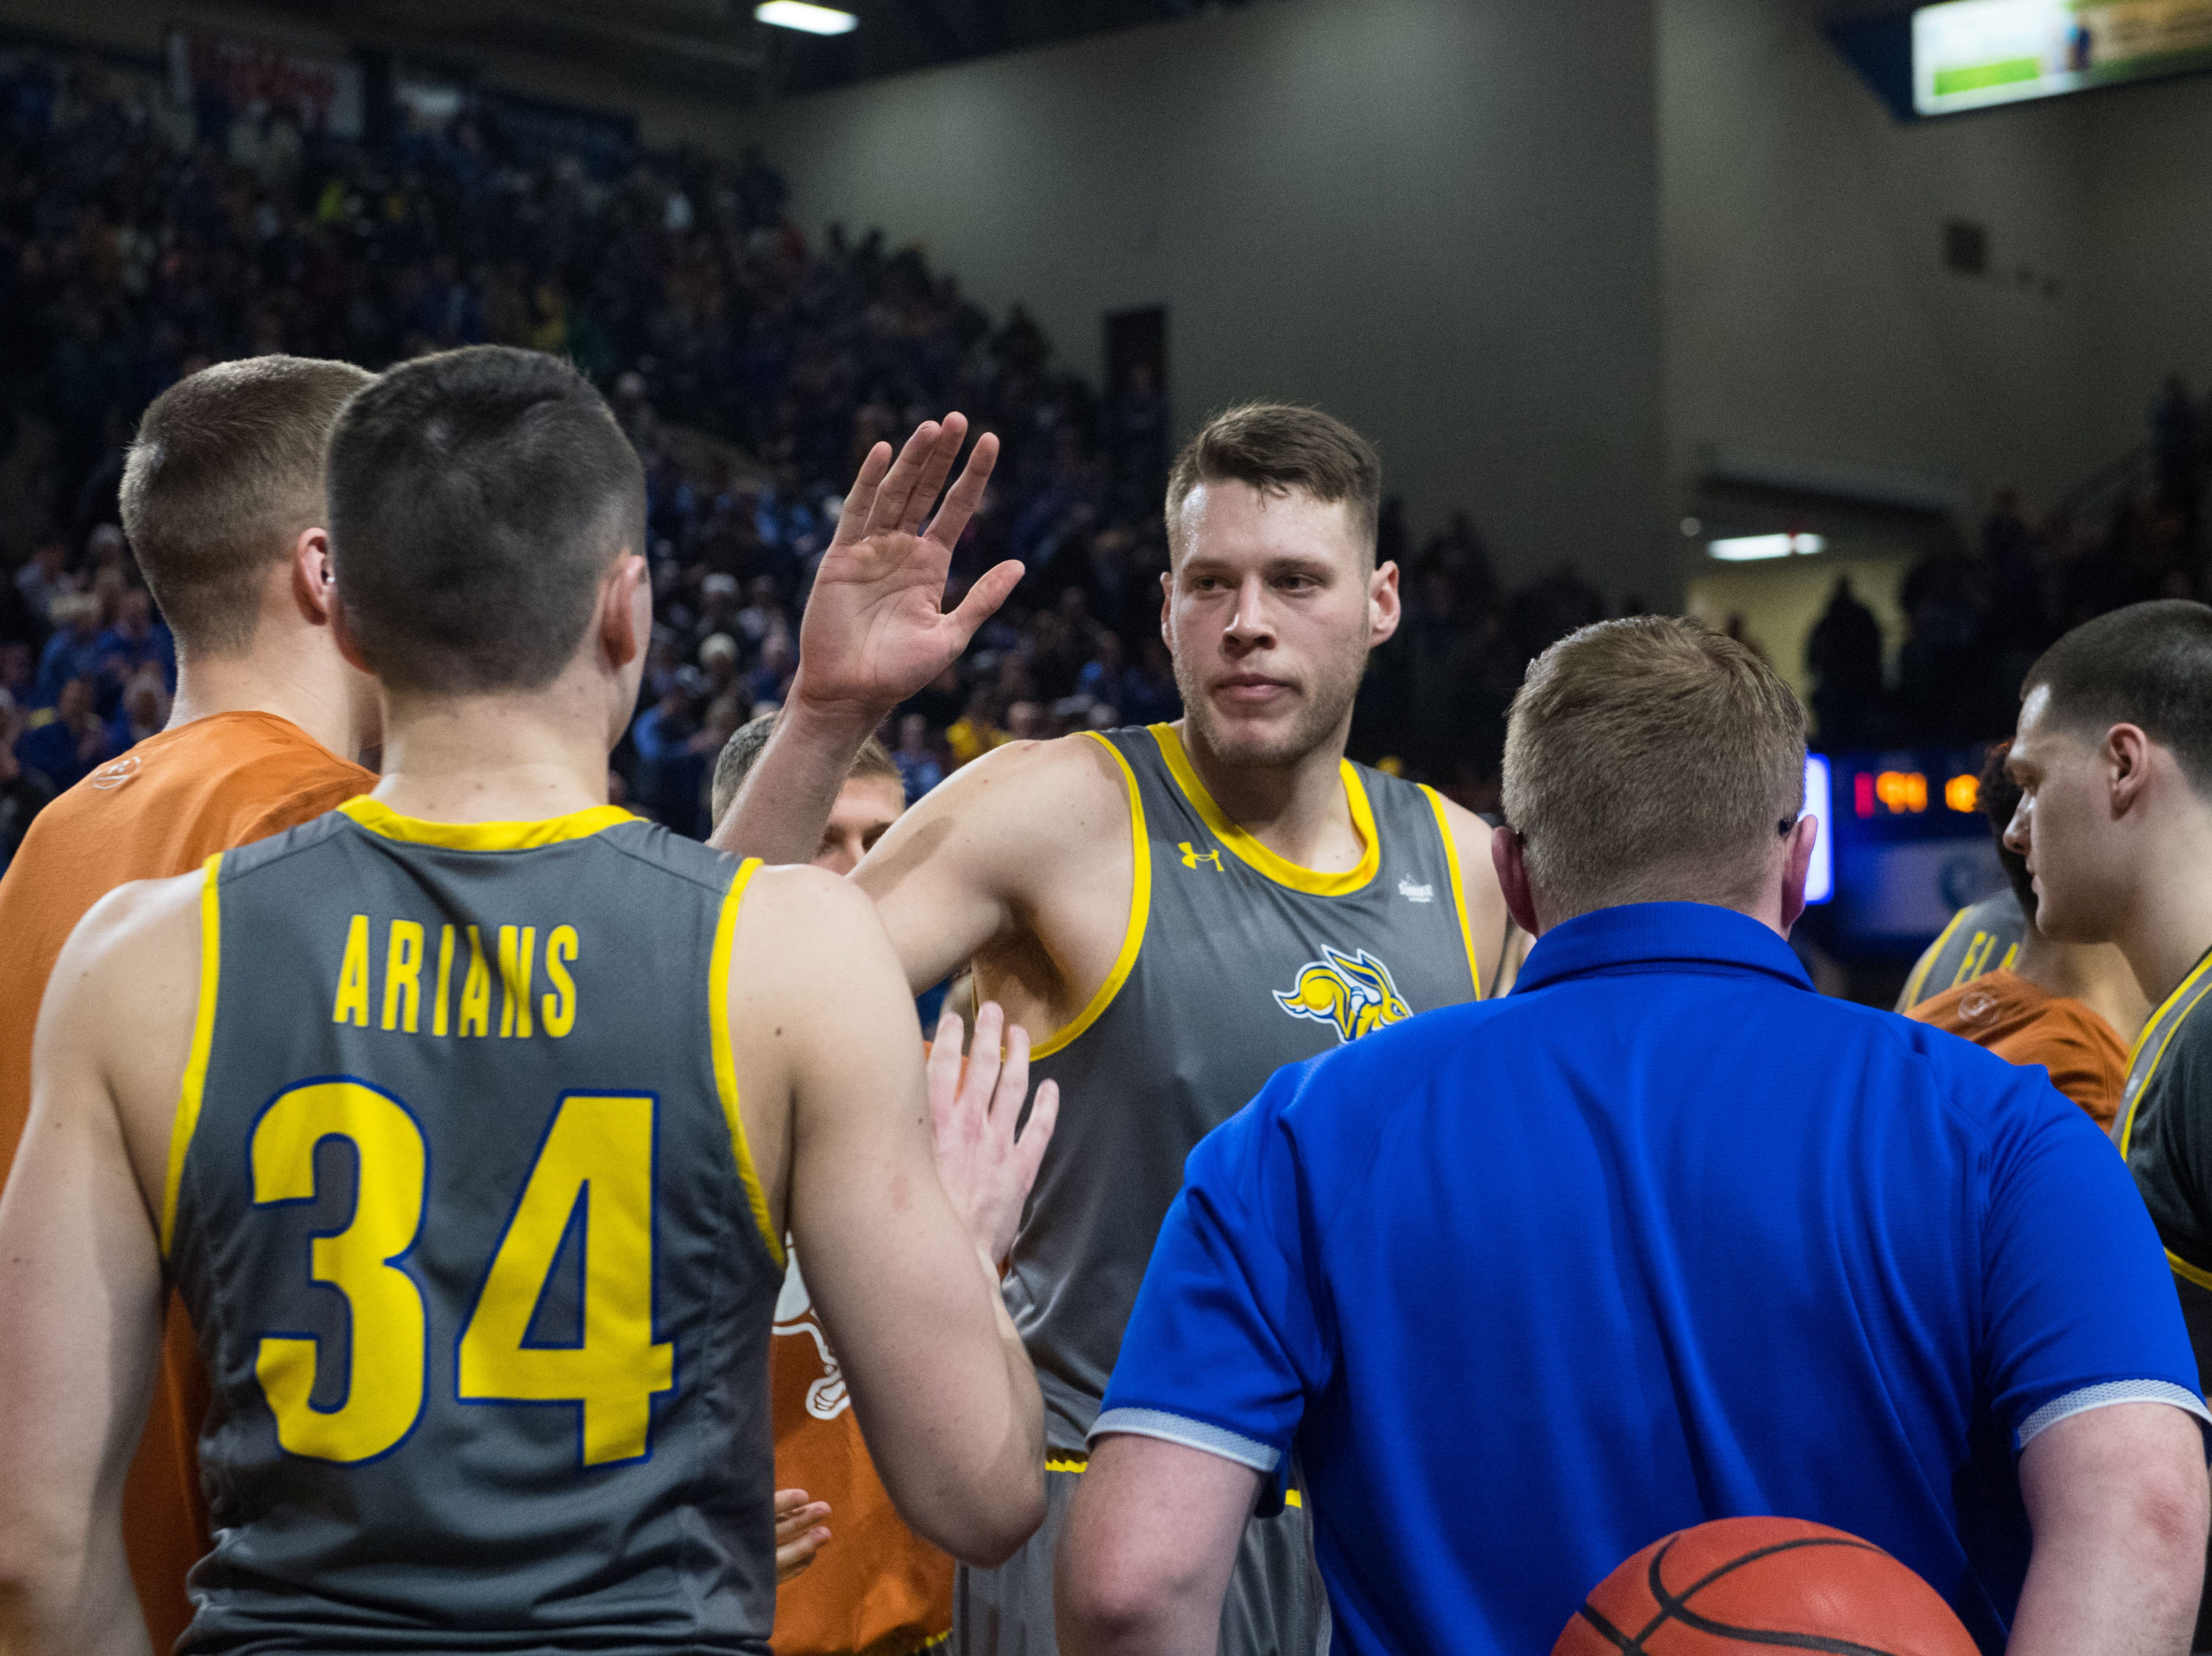 SDSU's Mike Daum (24) celebrates after the game against USD, Saturday, Feb. 23, 2019 in Brookings, S.D.